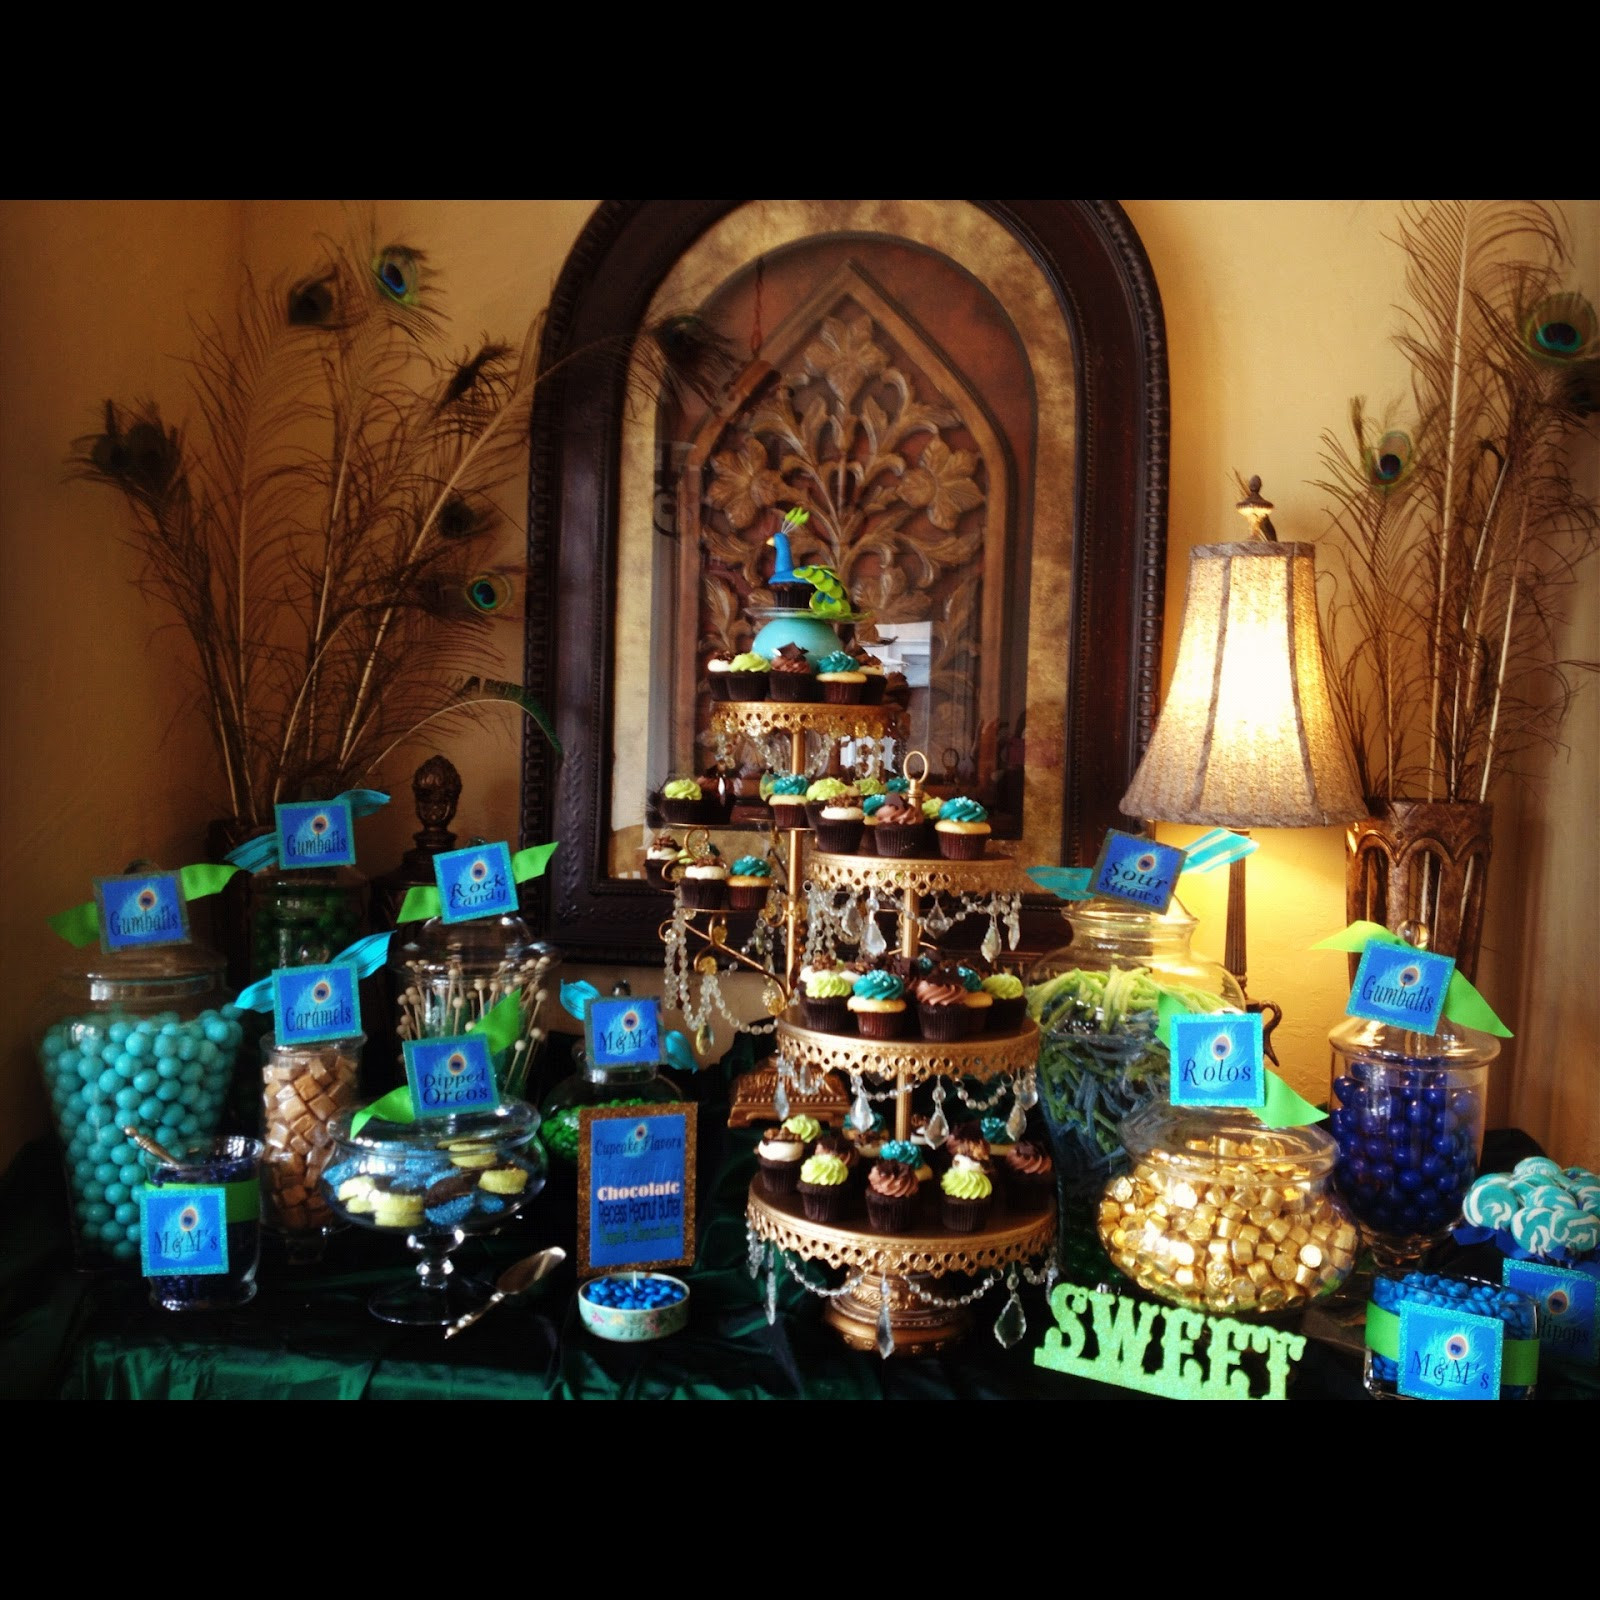 Sweet 16 Dinner Party Ideas  SugarPalooza Peacock Inspired Sweet 16 Birthday Dinner